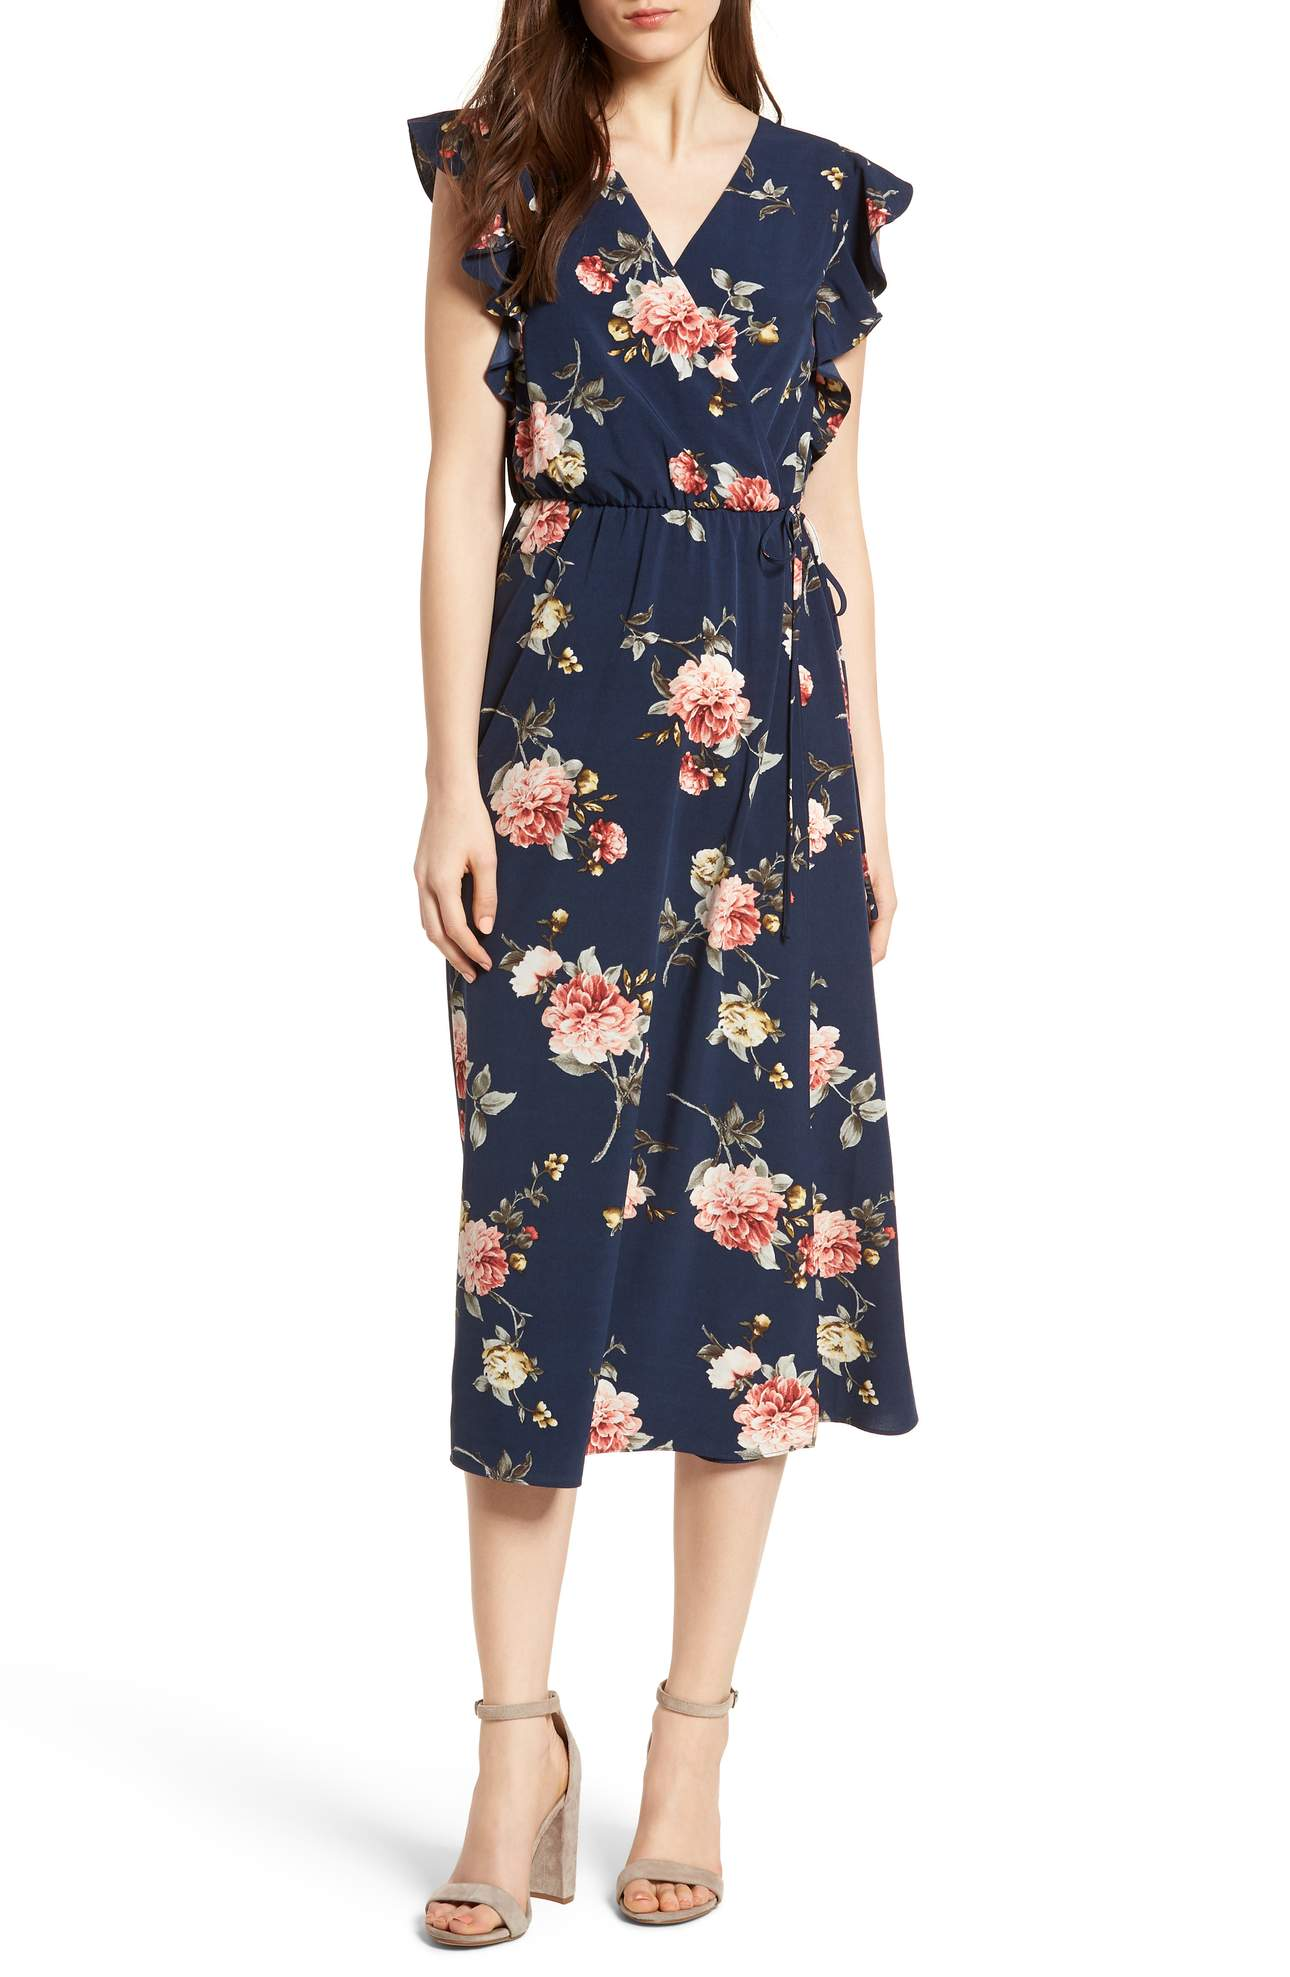 We can't have an Eater outfit roundup without a floral dress for mom. This wrap midi dress dressed up with breezy ruffles and a cheery floral print is sure to be one you'll reach for time and time again as the weather warms. It's also a super flattering cut. Price: $55 at Nordstrom. (Image: Nordstrom){ }